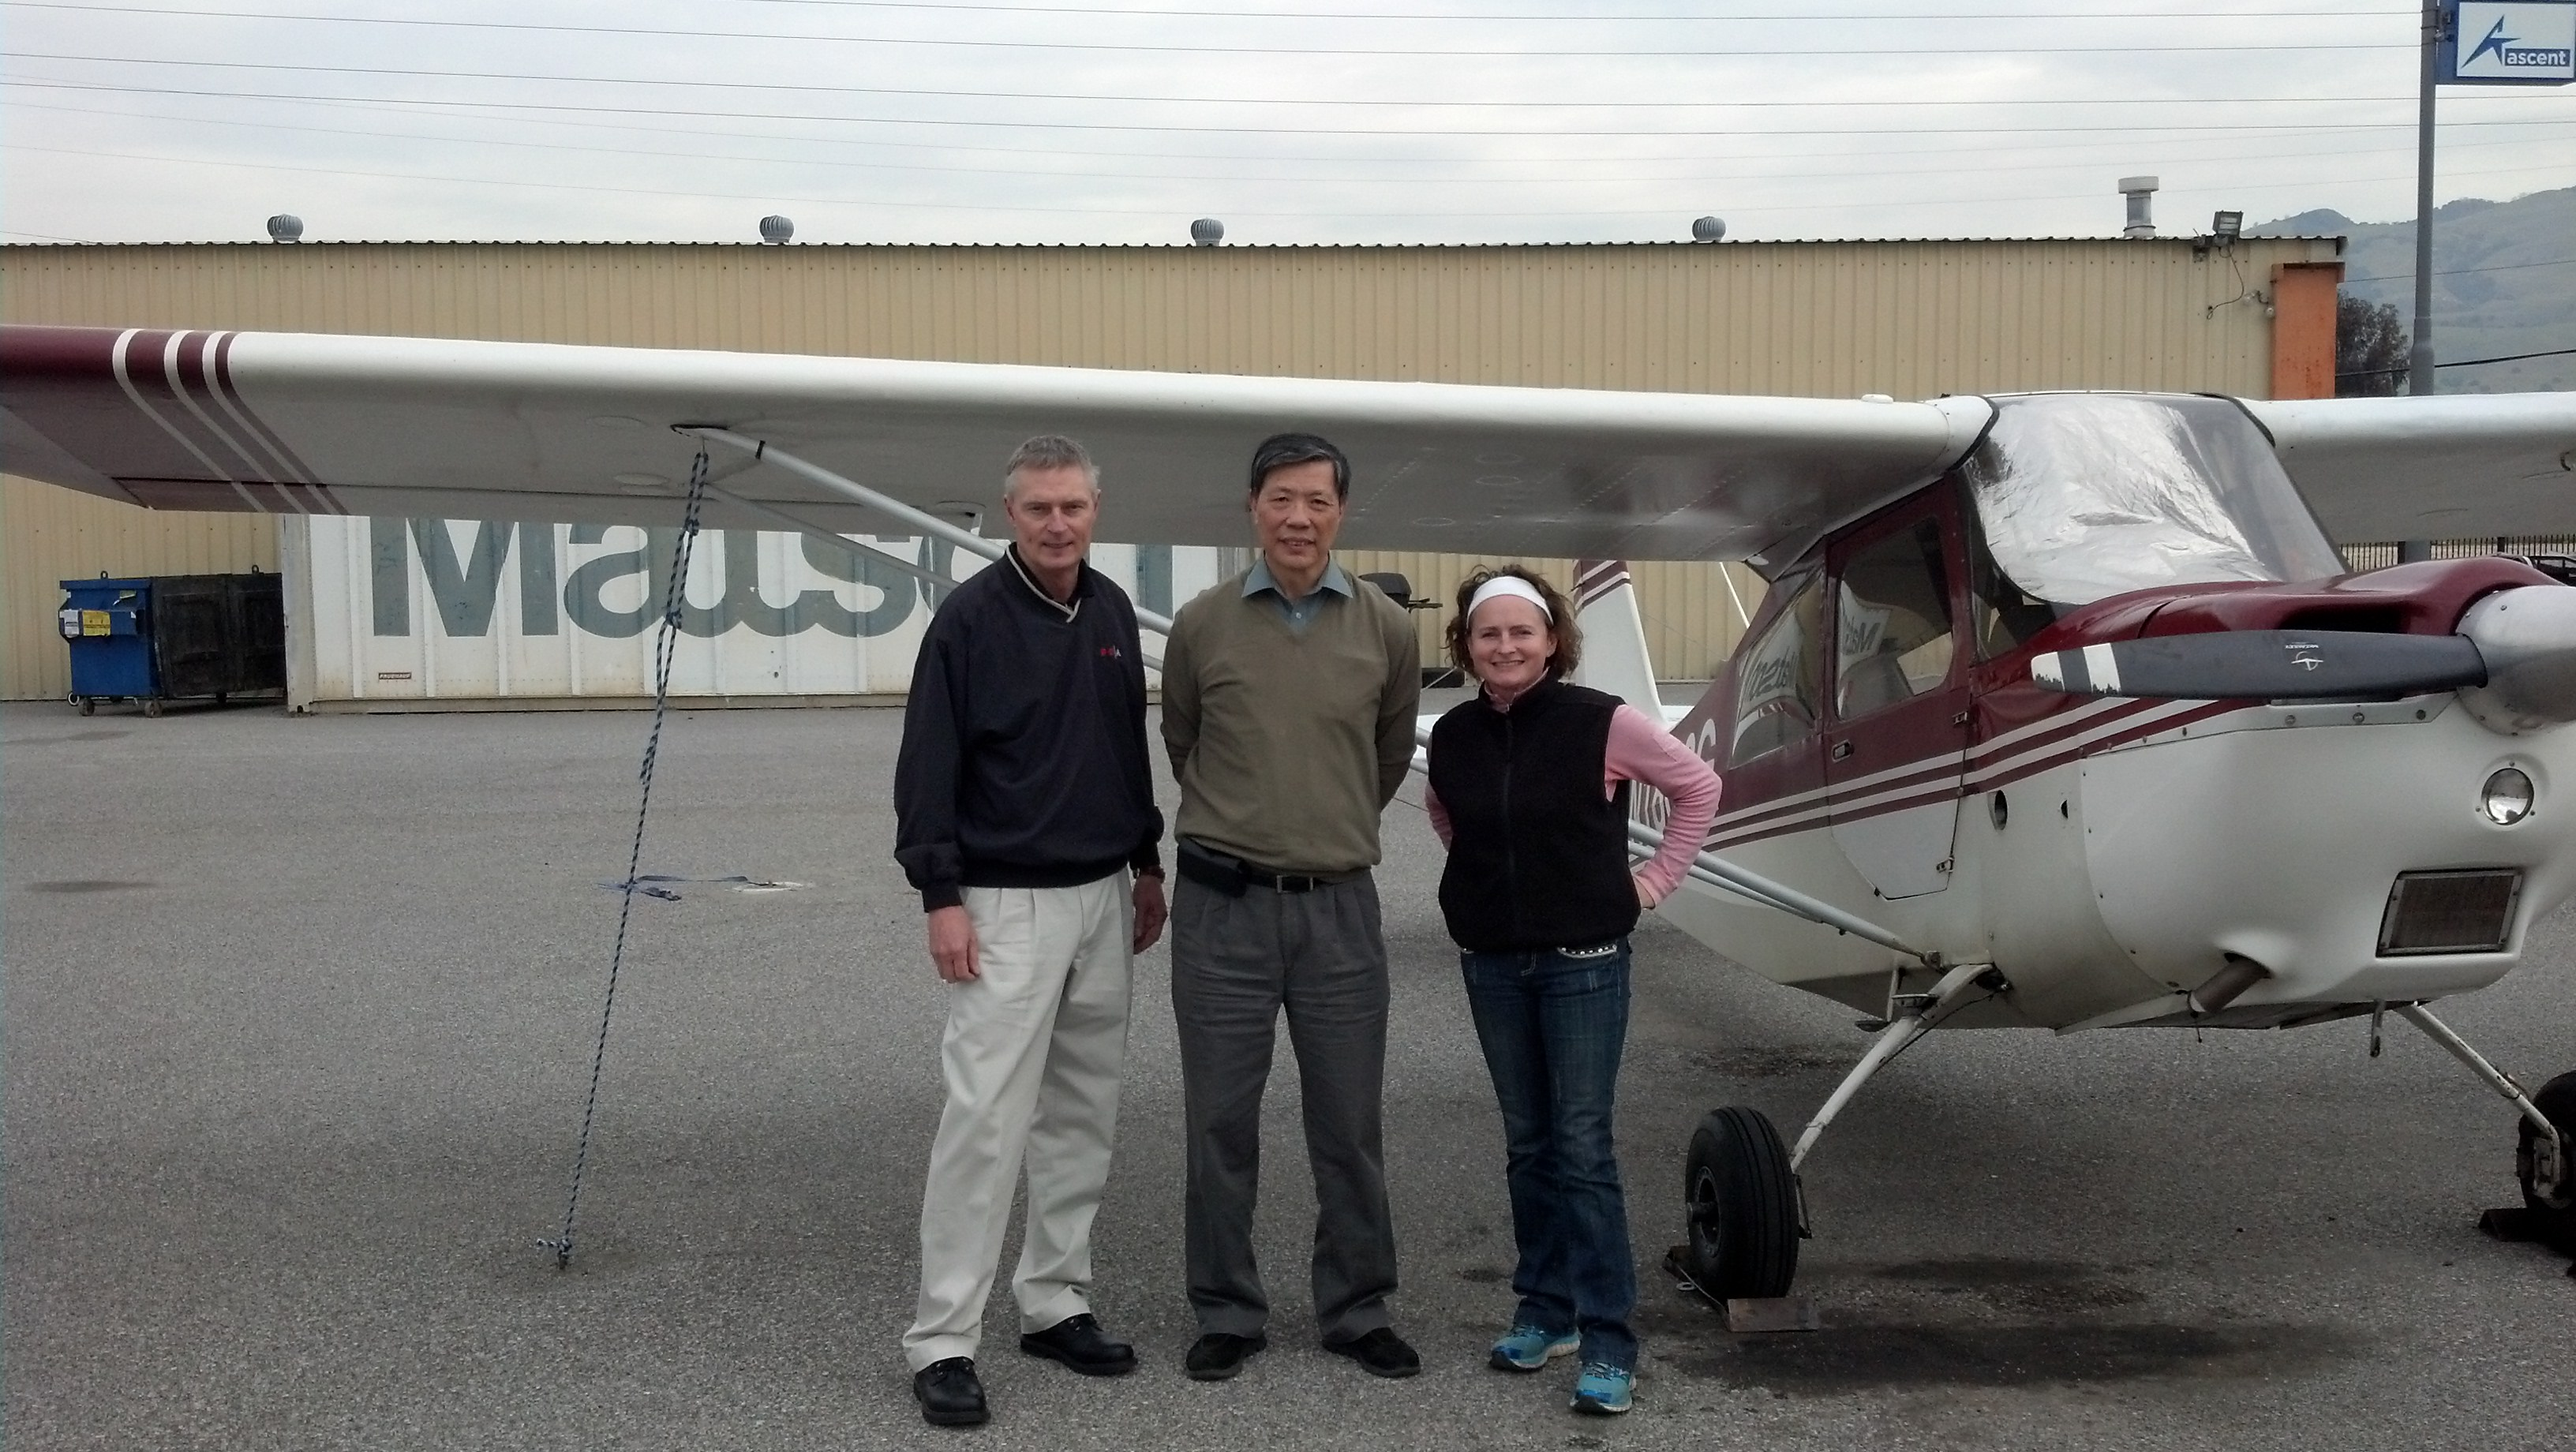 CFI Grainne Gilvarry joins DPE Scott Rohlfing and Ching Lee after a well executed checkride flight